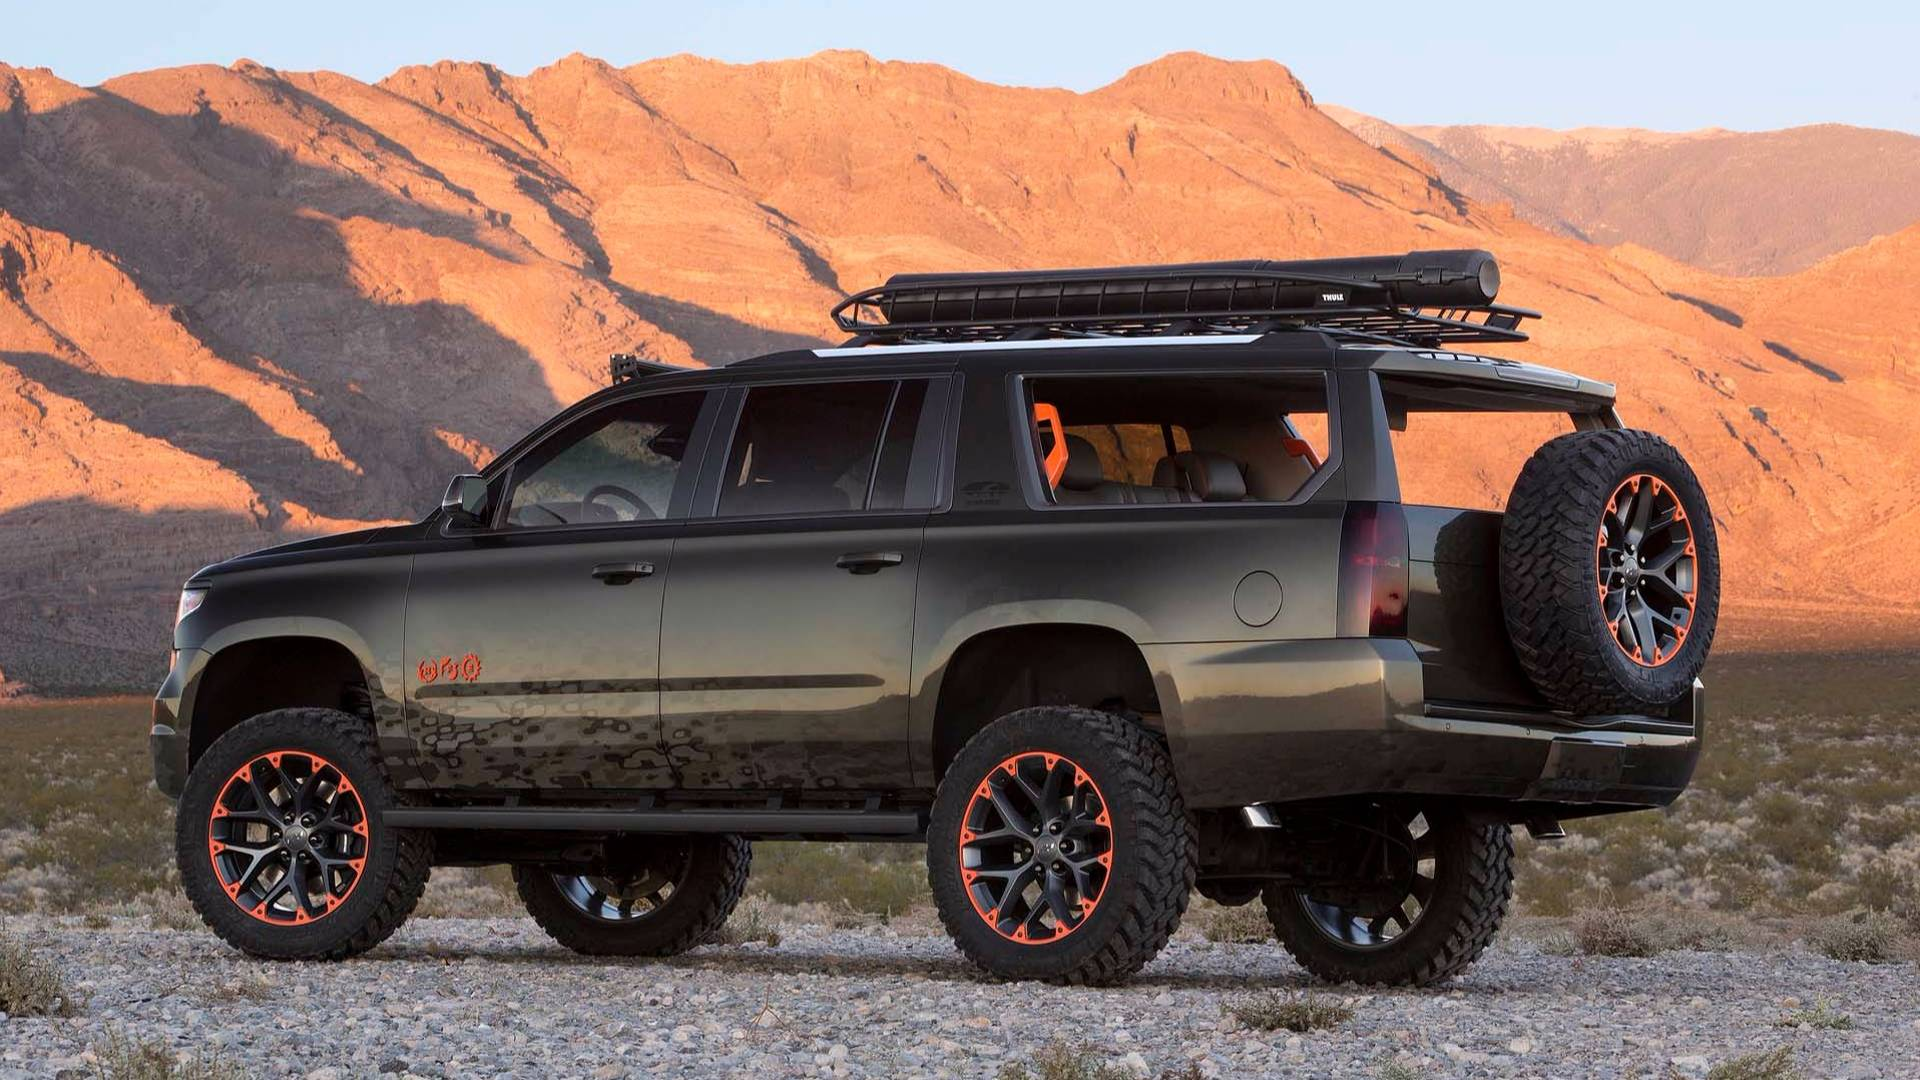 2018 Chevy Silverado Performance Concept Gets Supercharged